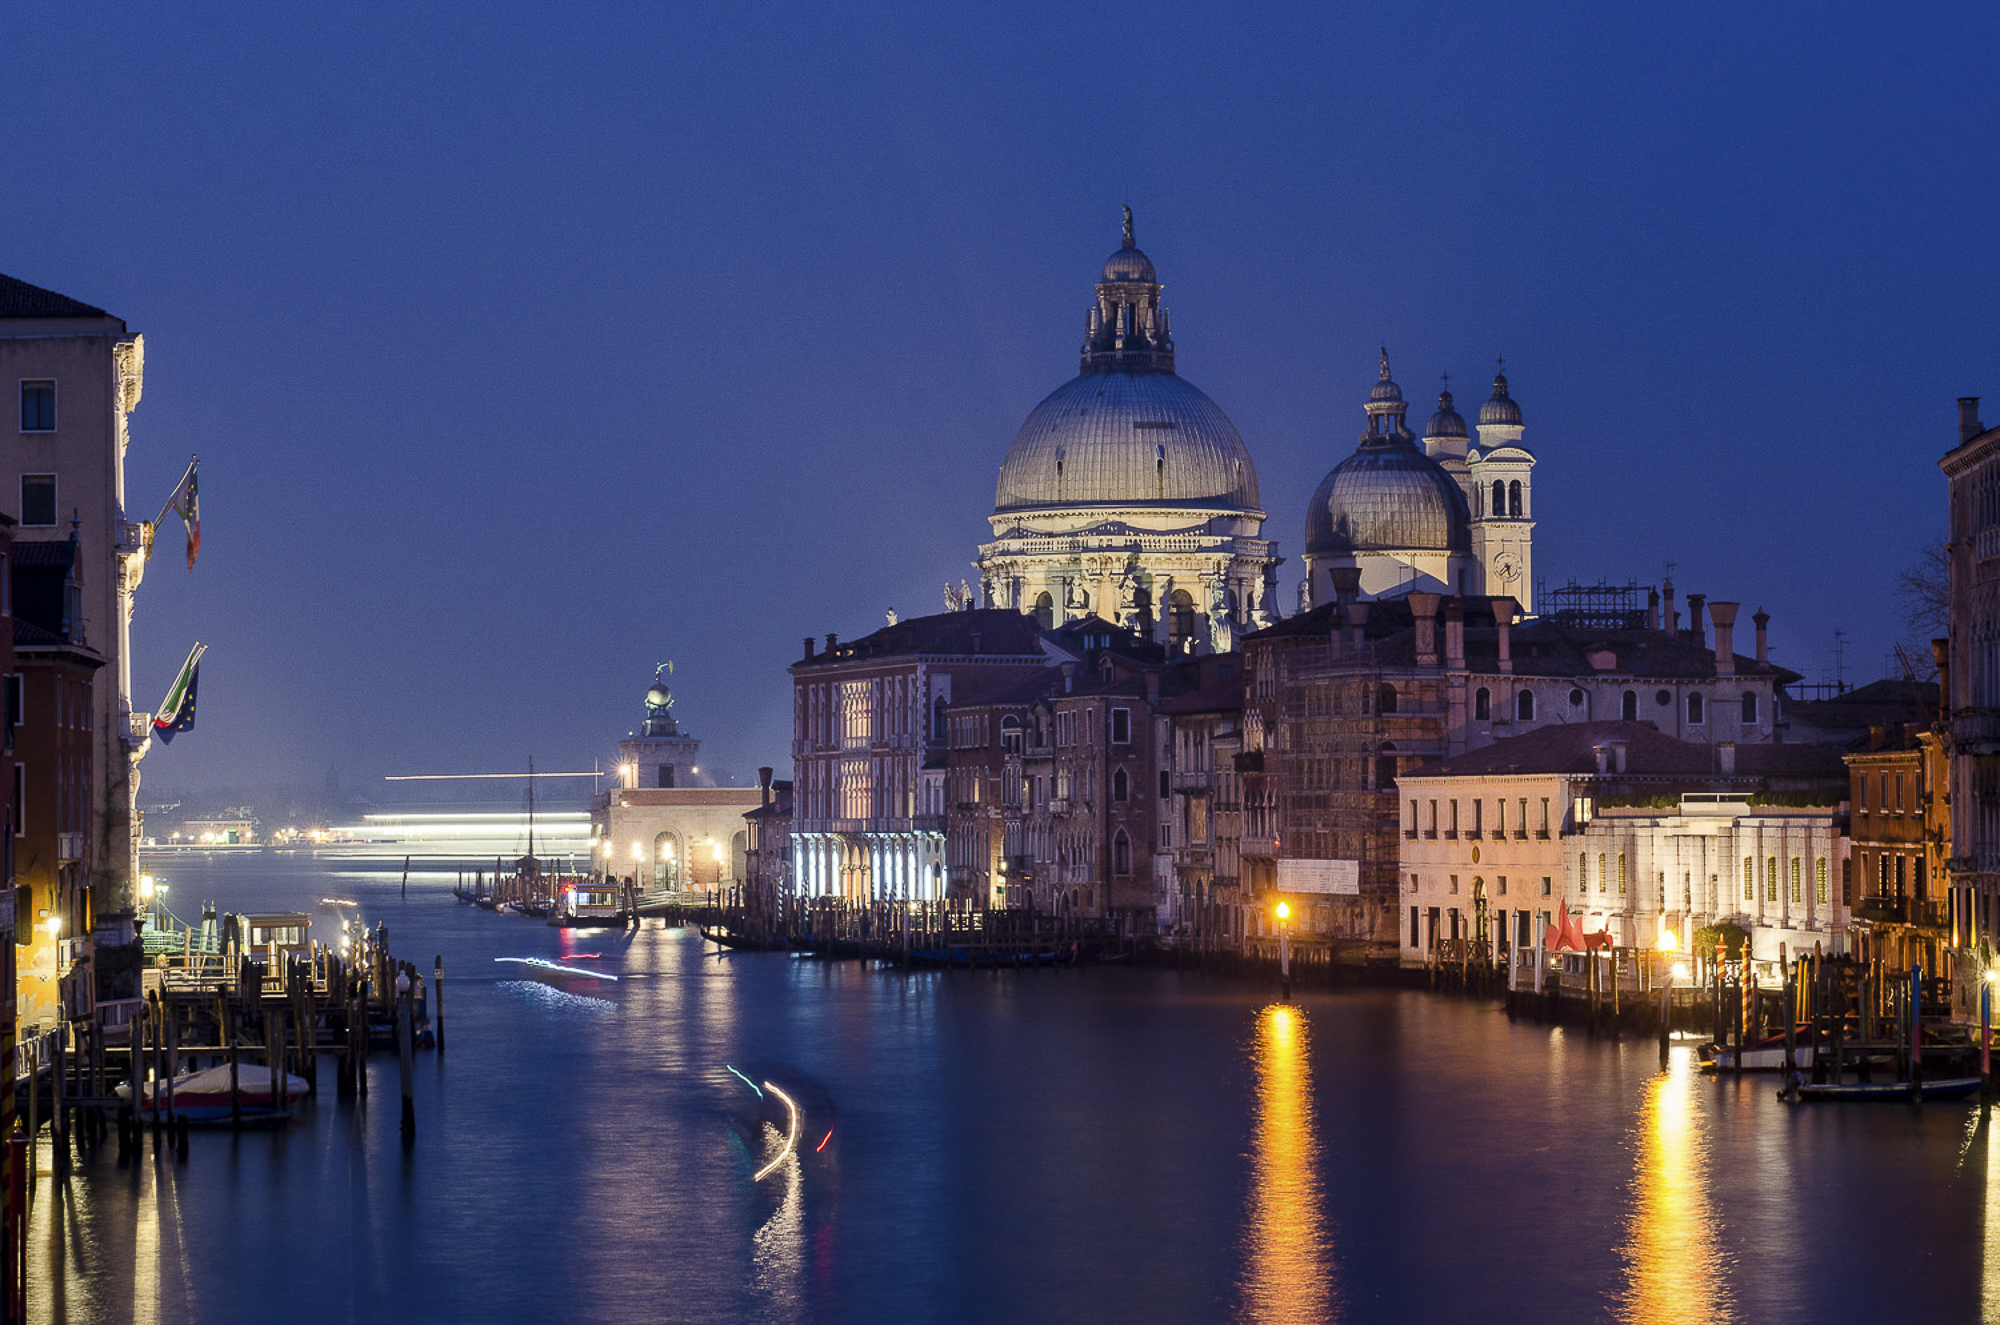 venice-night-photo-tour-001-aperture-tours.jpg